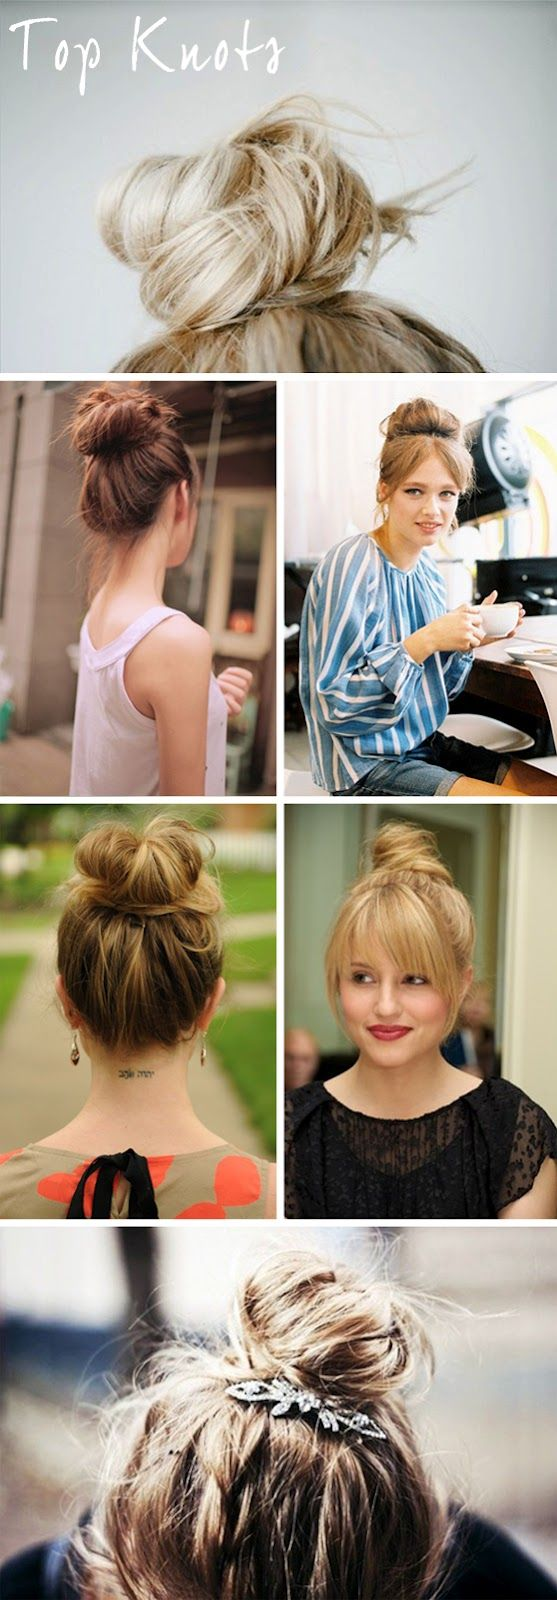 buns: High Buns, Knot Buns, Long Hair, Messy Buns, Hair Style, Summer Hairstyles, Hair Buns, Tops Knot, My Style